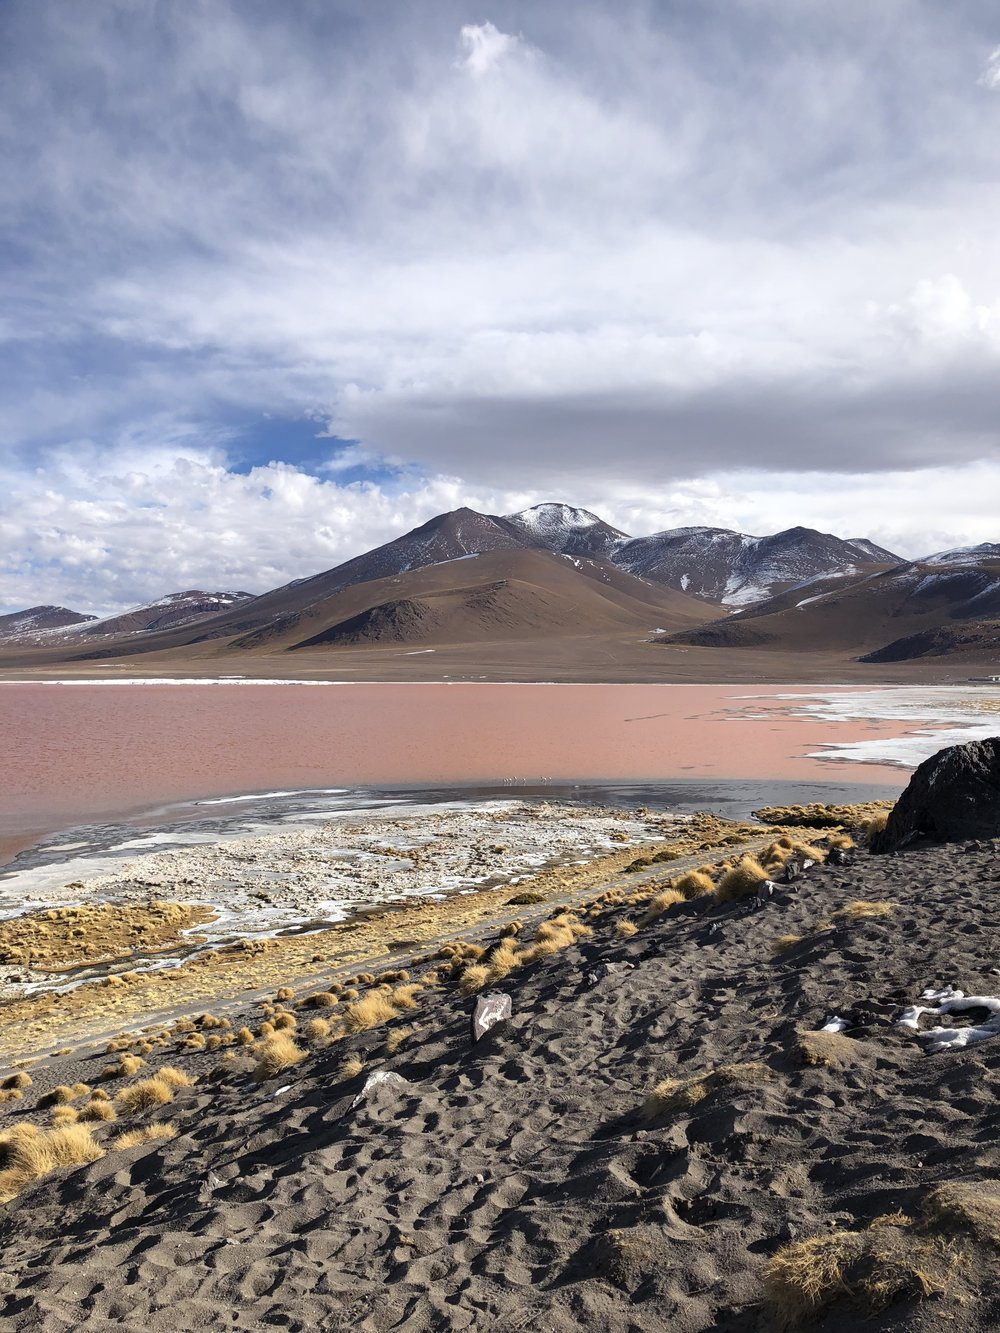 The third lagoon we visited was the Red Lagoon. This lagoon is red because of the mix of minerals.